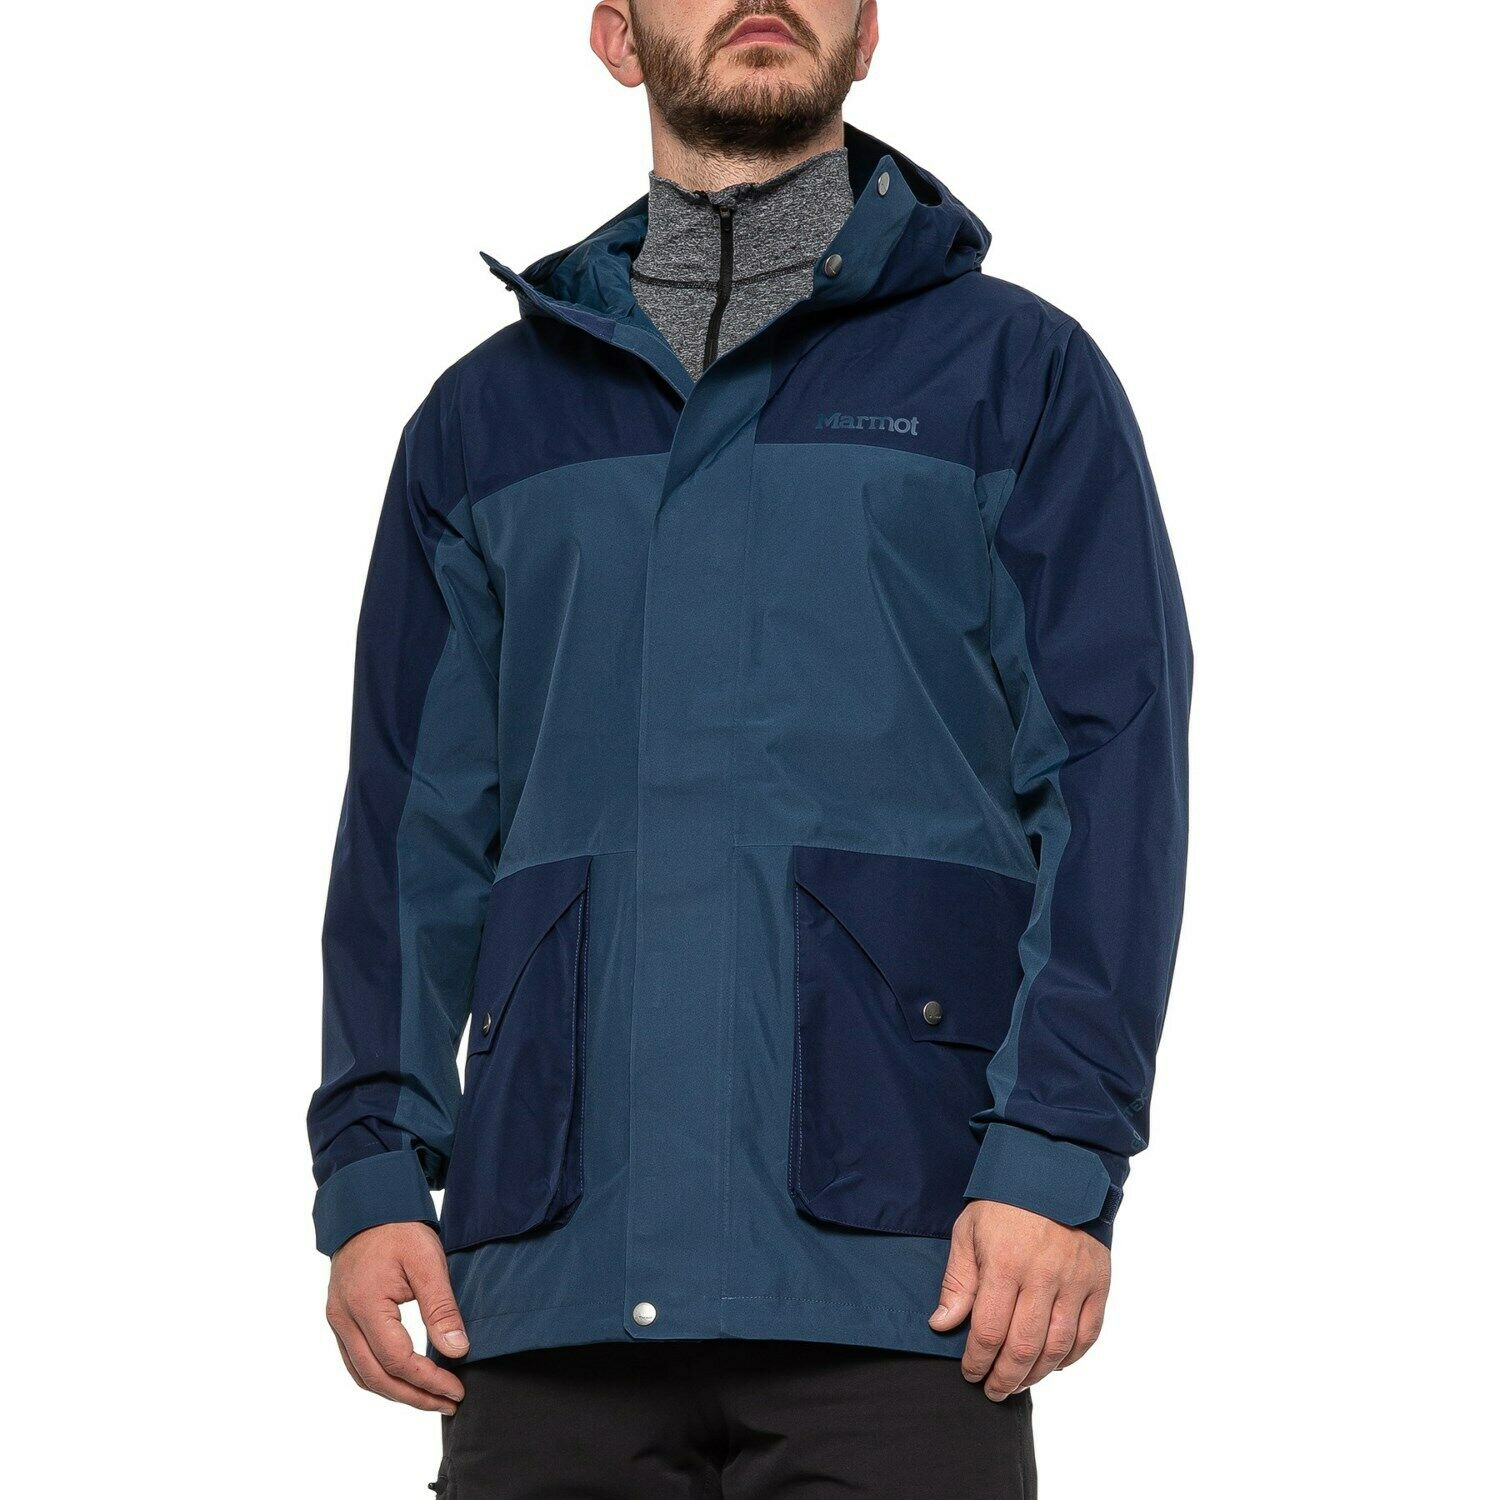 Marmot Wend Jacket Gore-Tex Hooded '74 Collection Blue NEW M